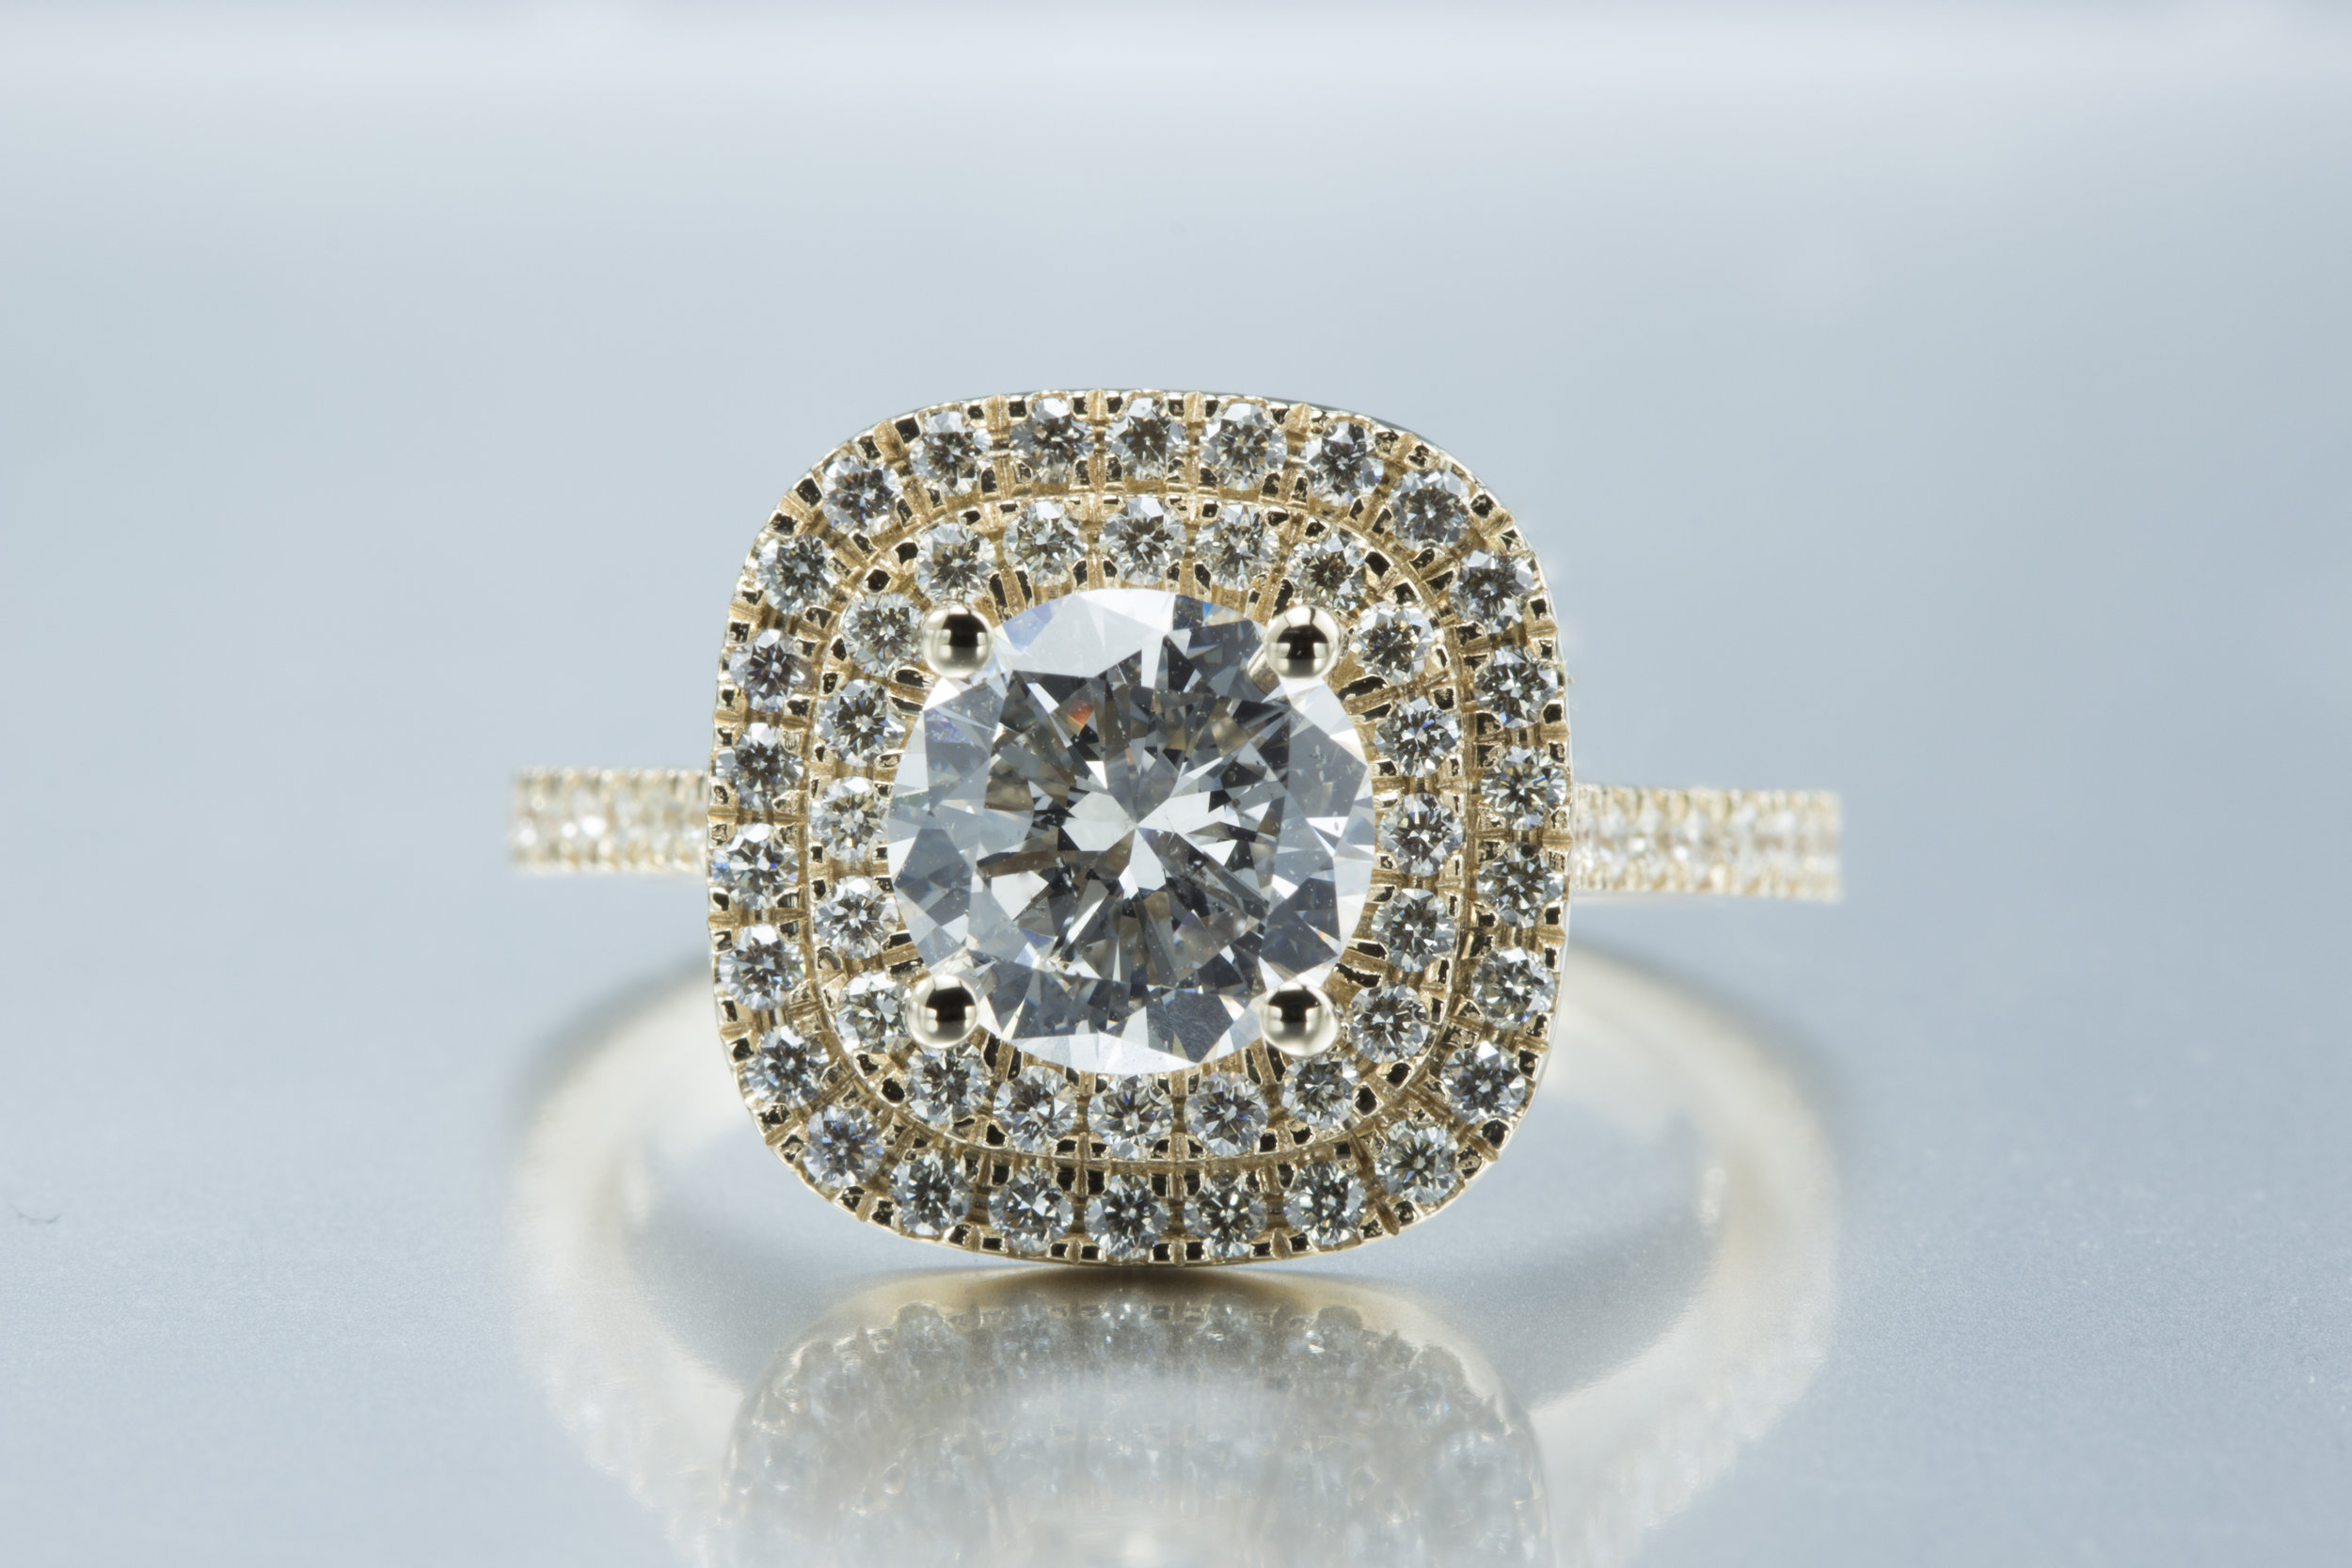 Double Halo Diamond Ring with 14K Yellow Gold - Square Diamond Ring with Diamond Center stone and diamonds all around.